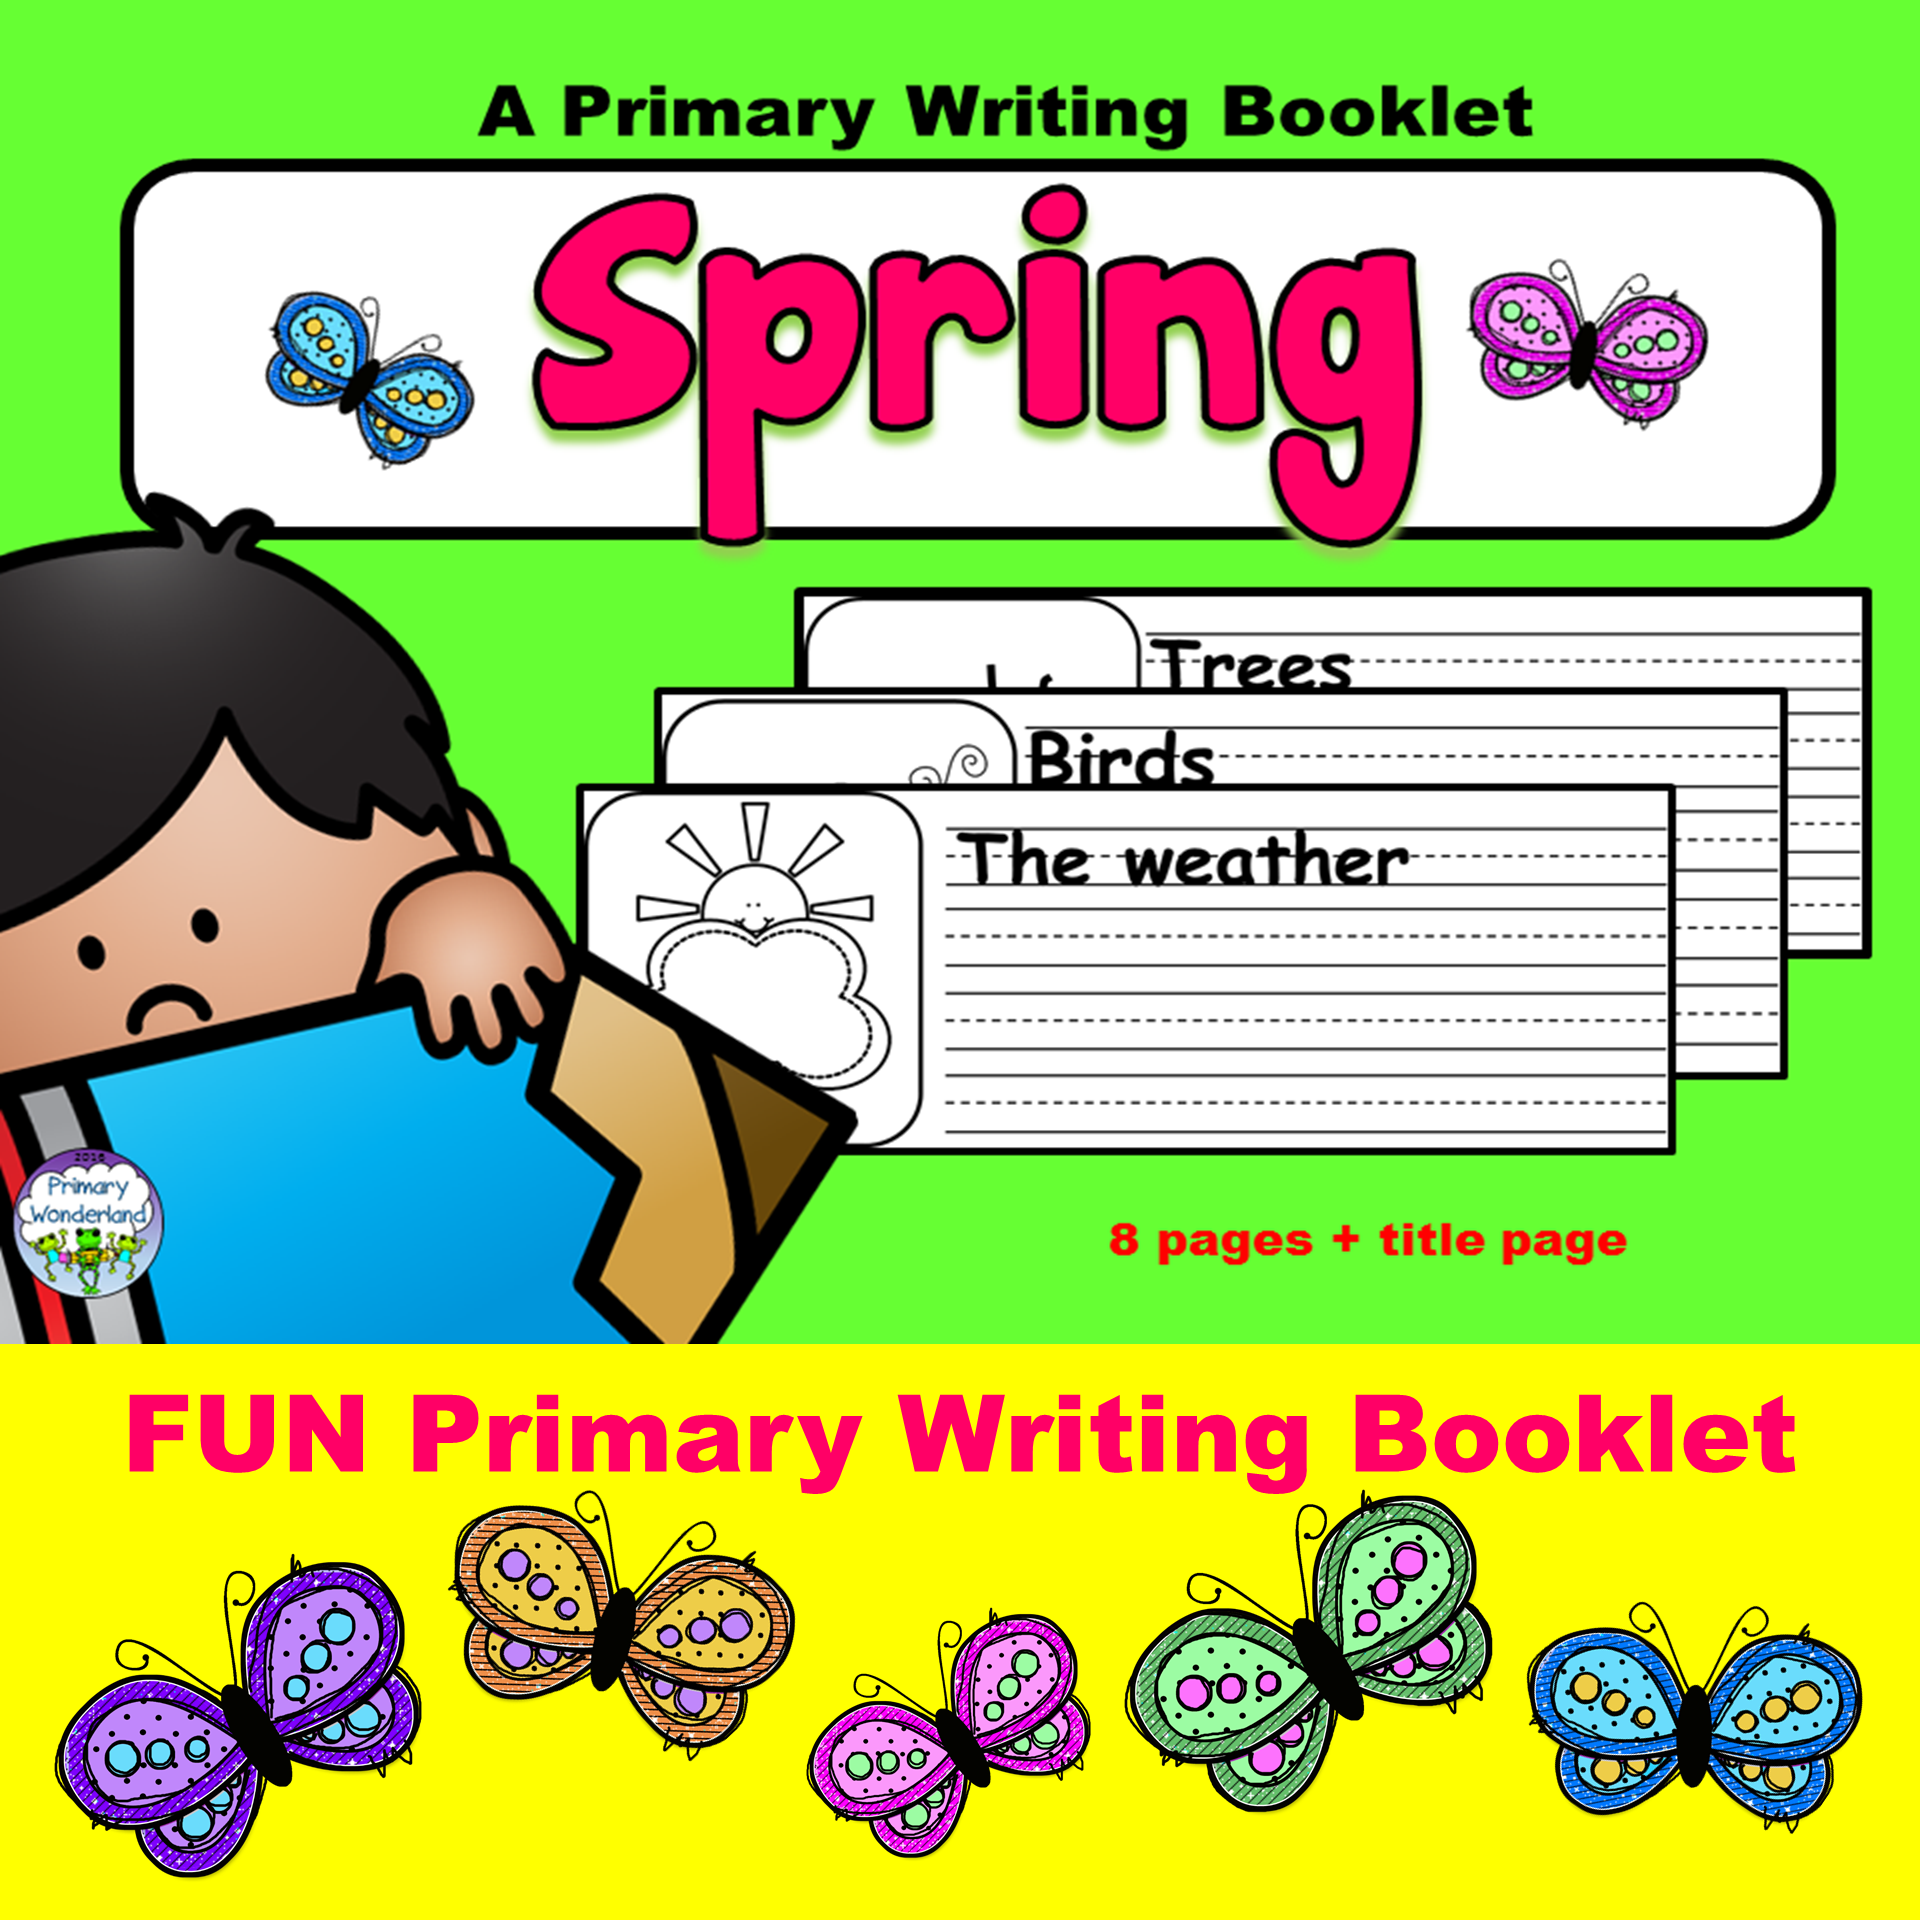 Primary writing booklet for Spring!  Simple sentence starters ensure a fun project for writing and reading!